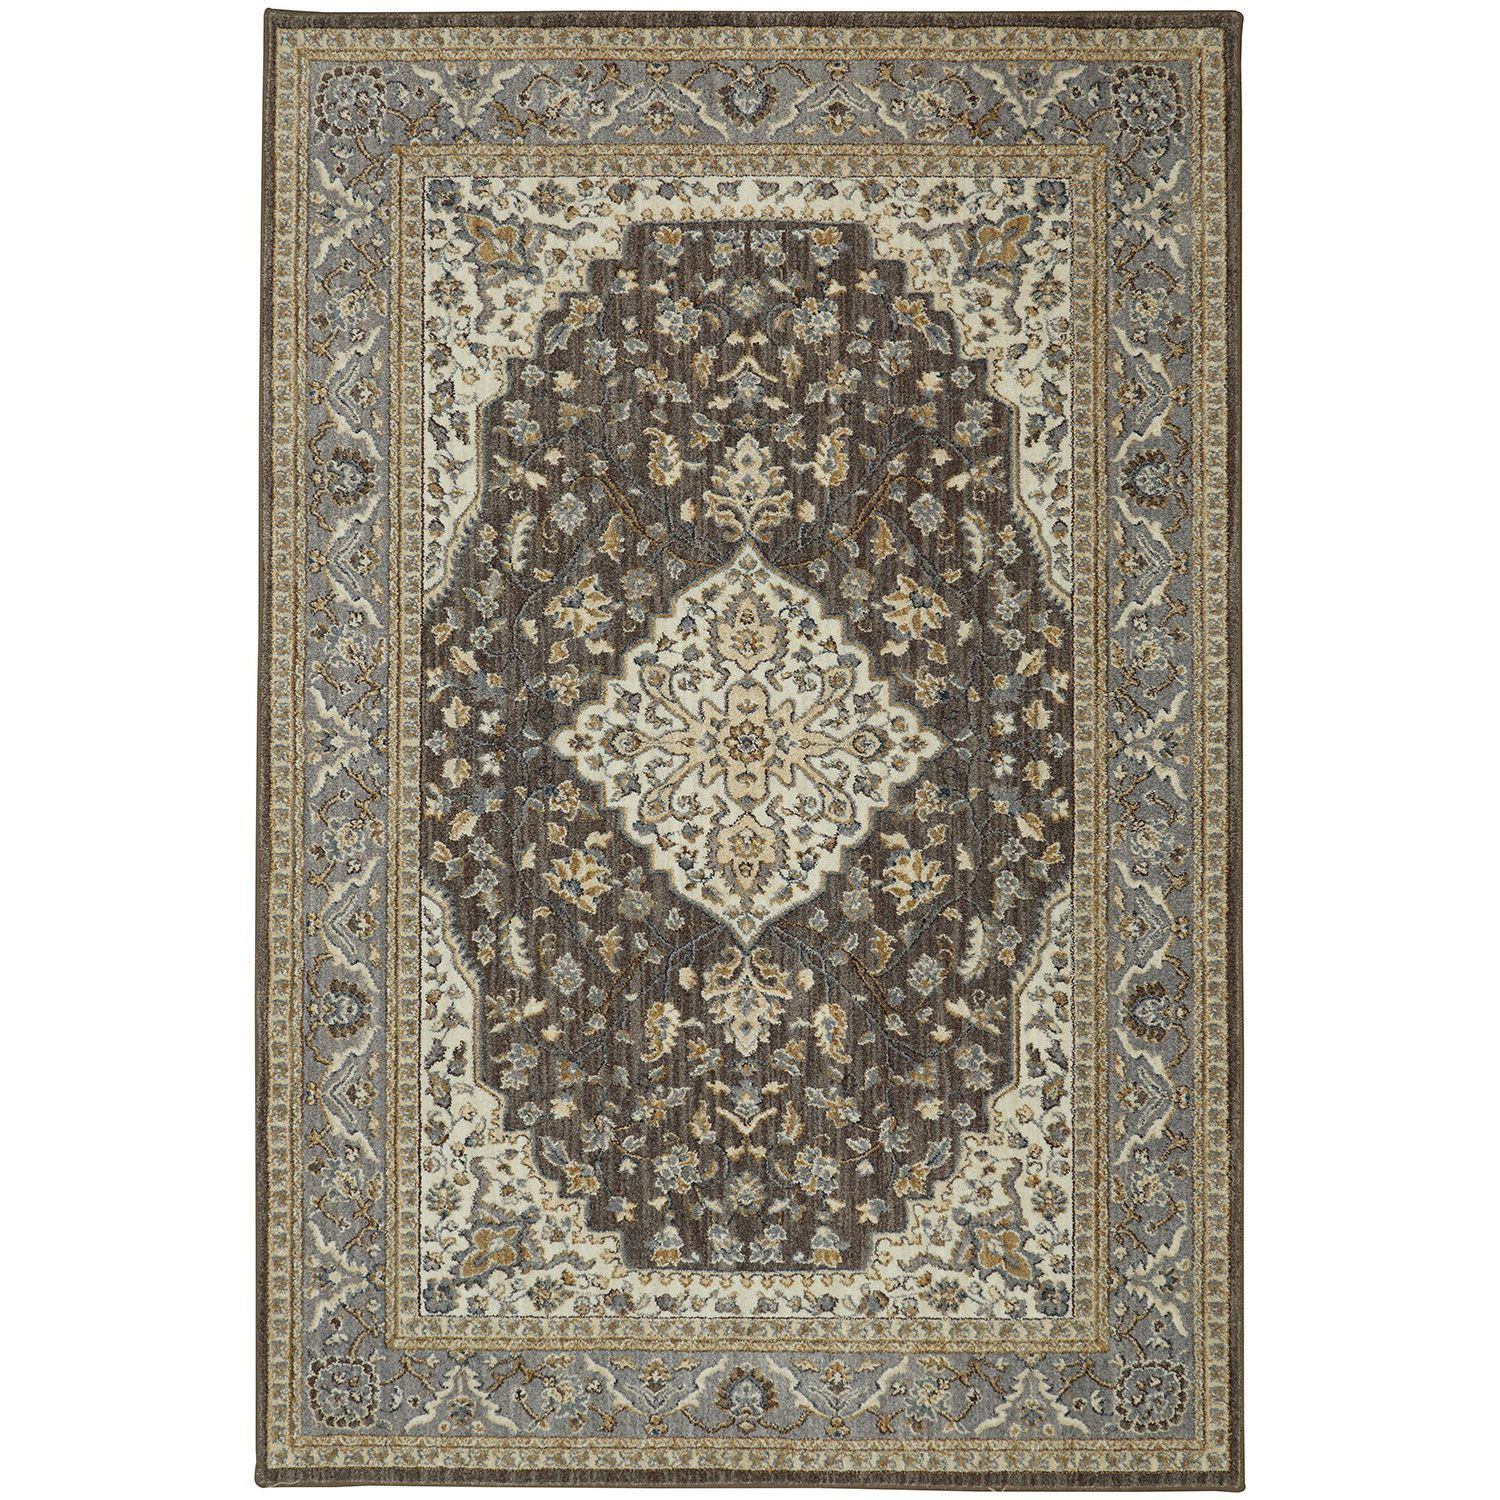 Kham Grey And Brown Traditional 8x10 Rug